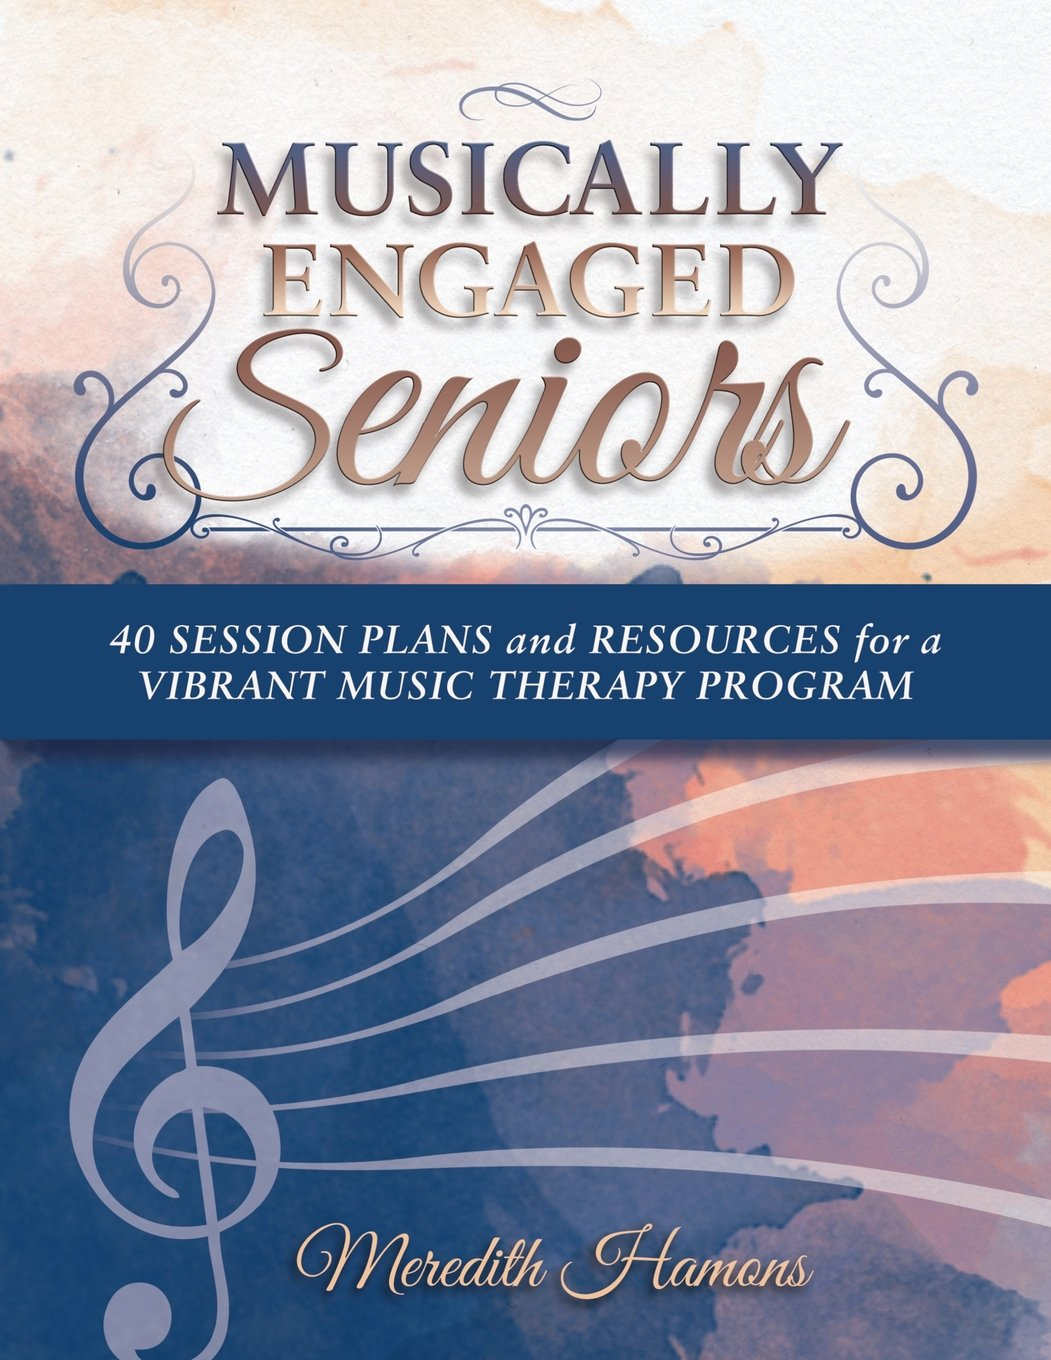 Read Online Musically Engaged Seniors: 40 Session Plans and Resources for a Vibrant Music Therapy Program ebook